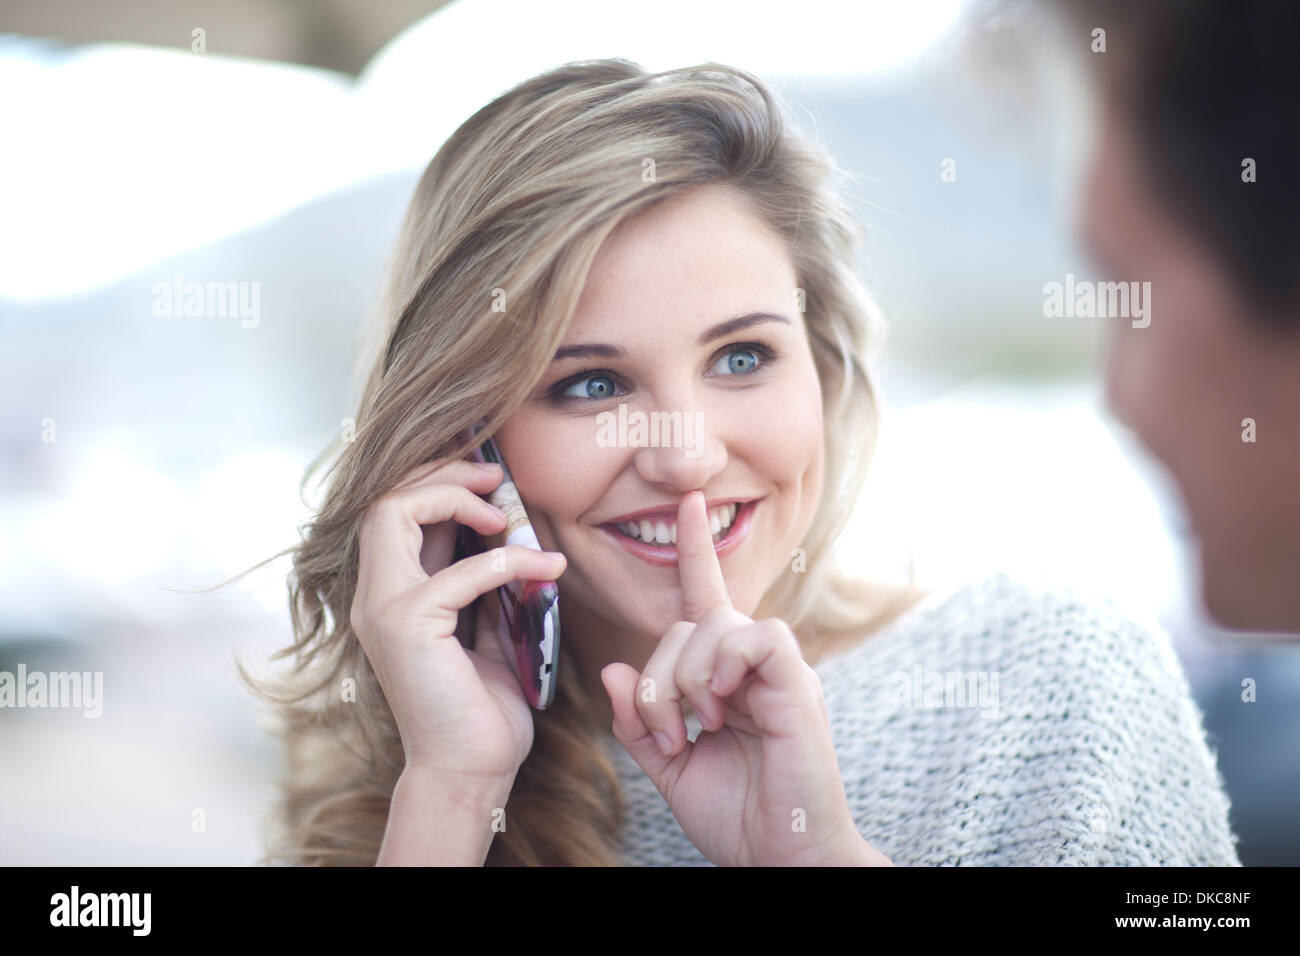 Young woman on phonecall with finger to lips - Stock Image